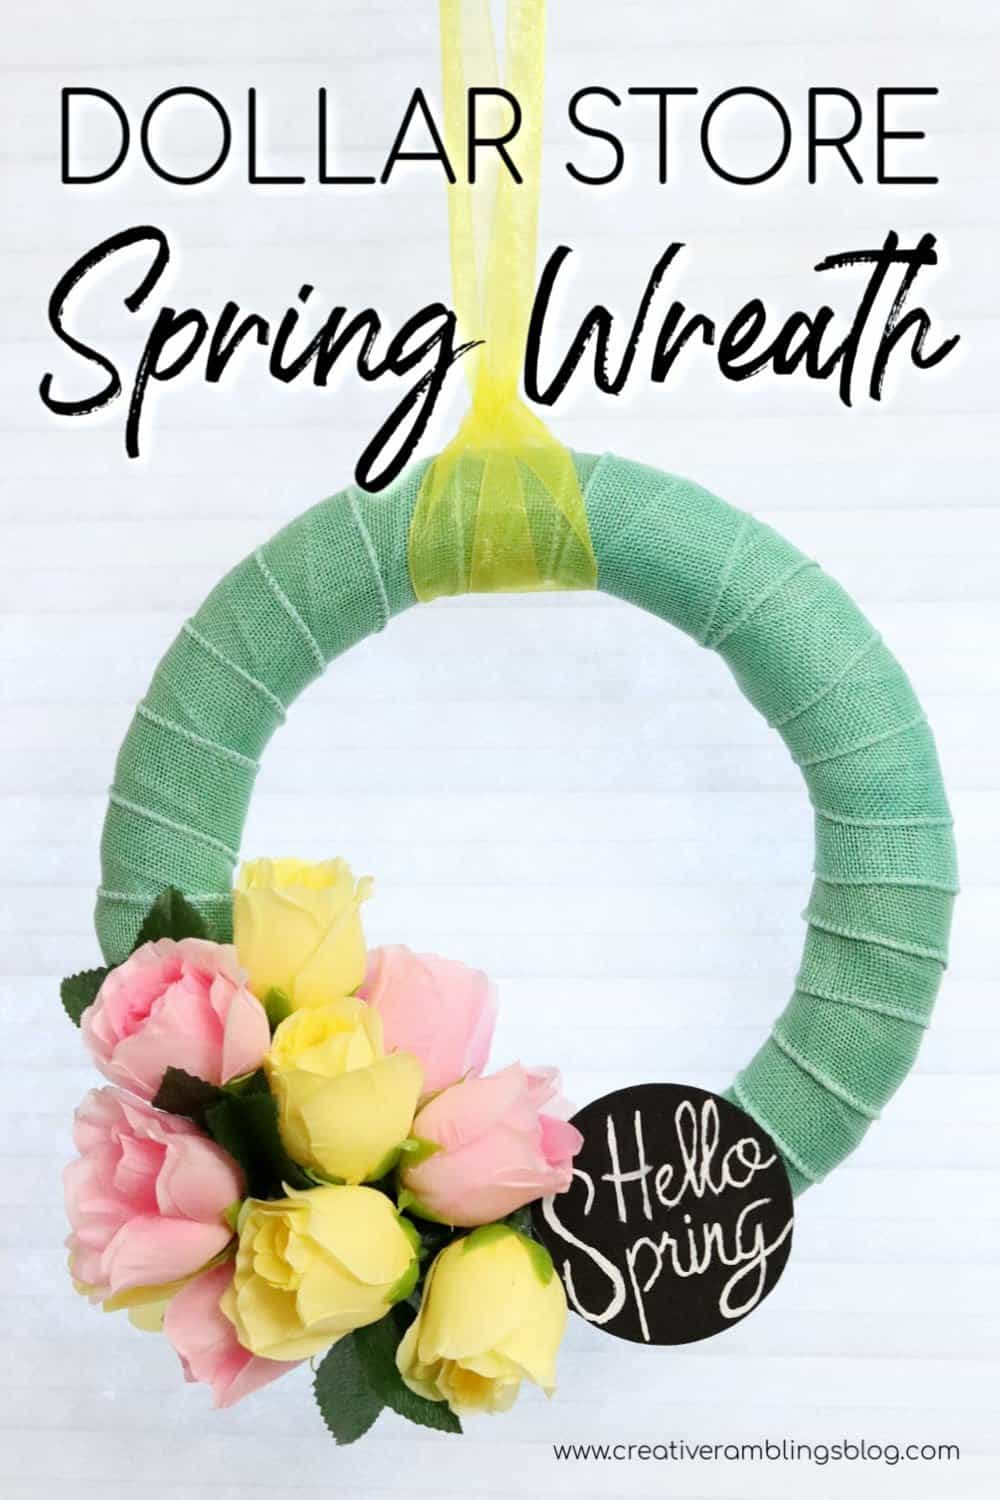 Dollar Store Spring wreath with flowers and chalkboard sign